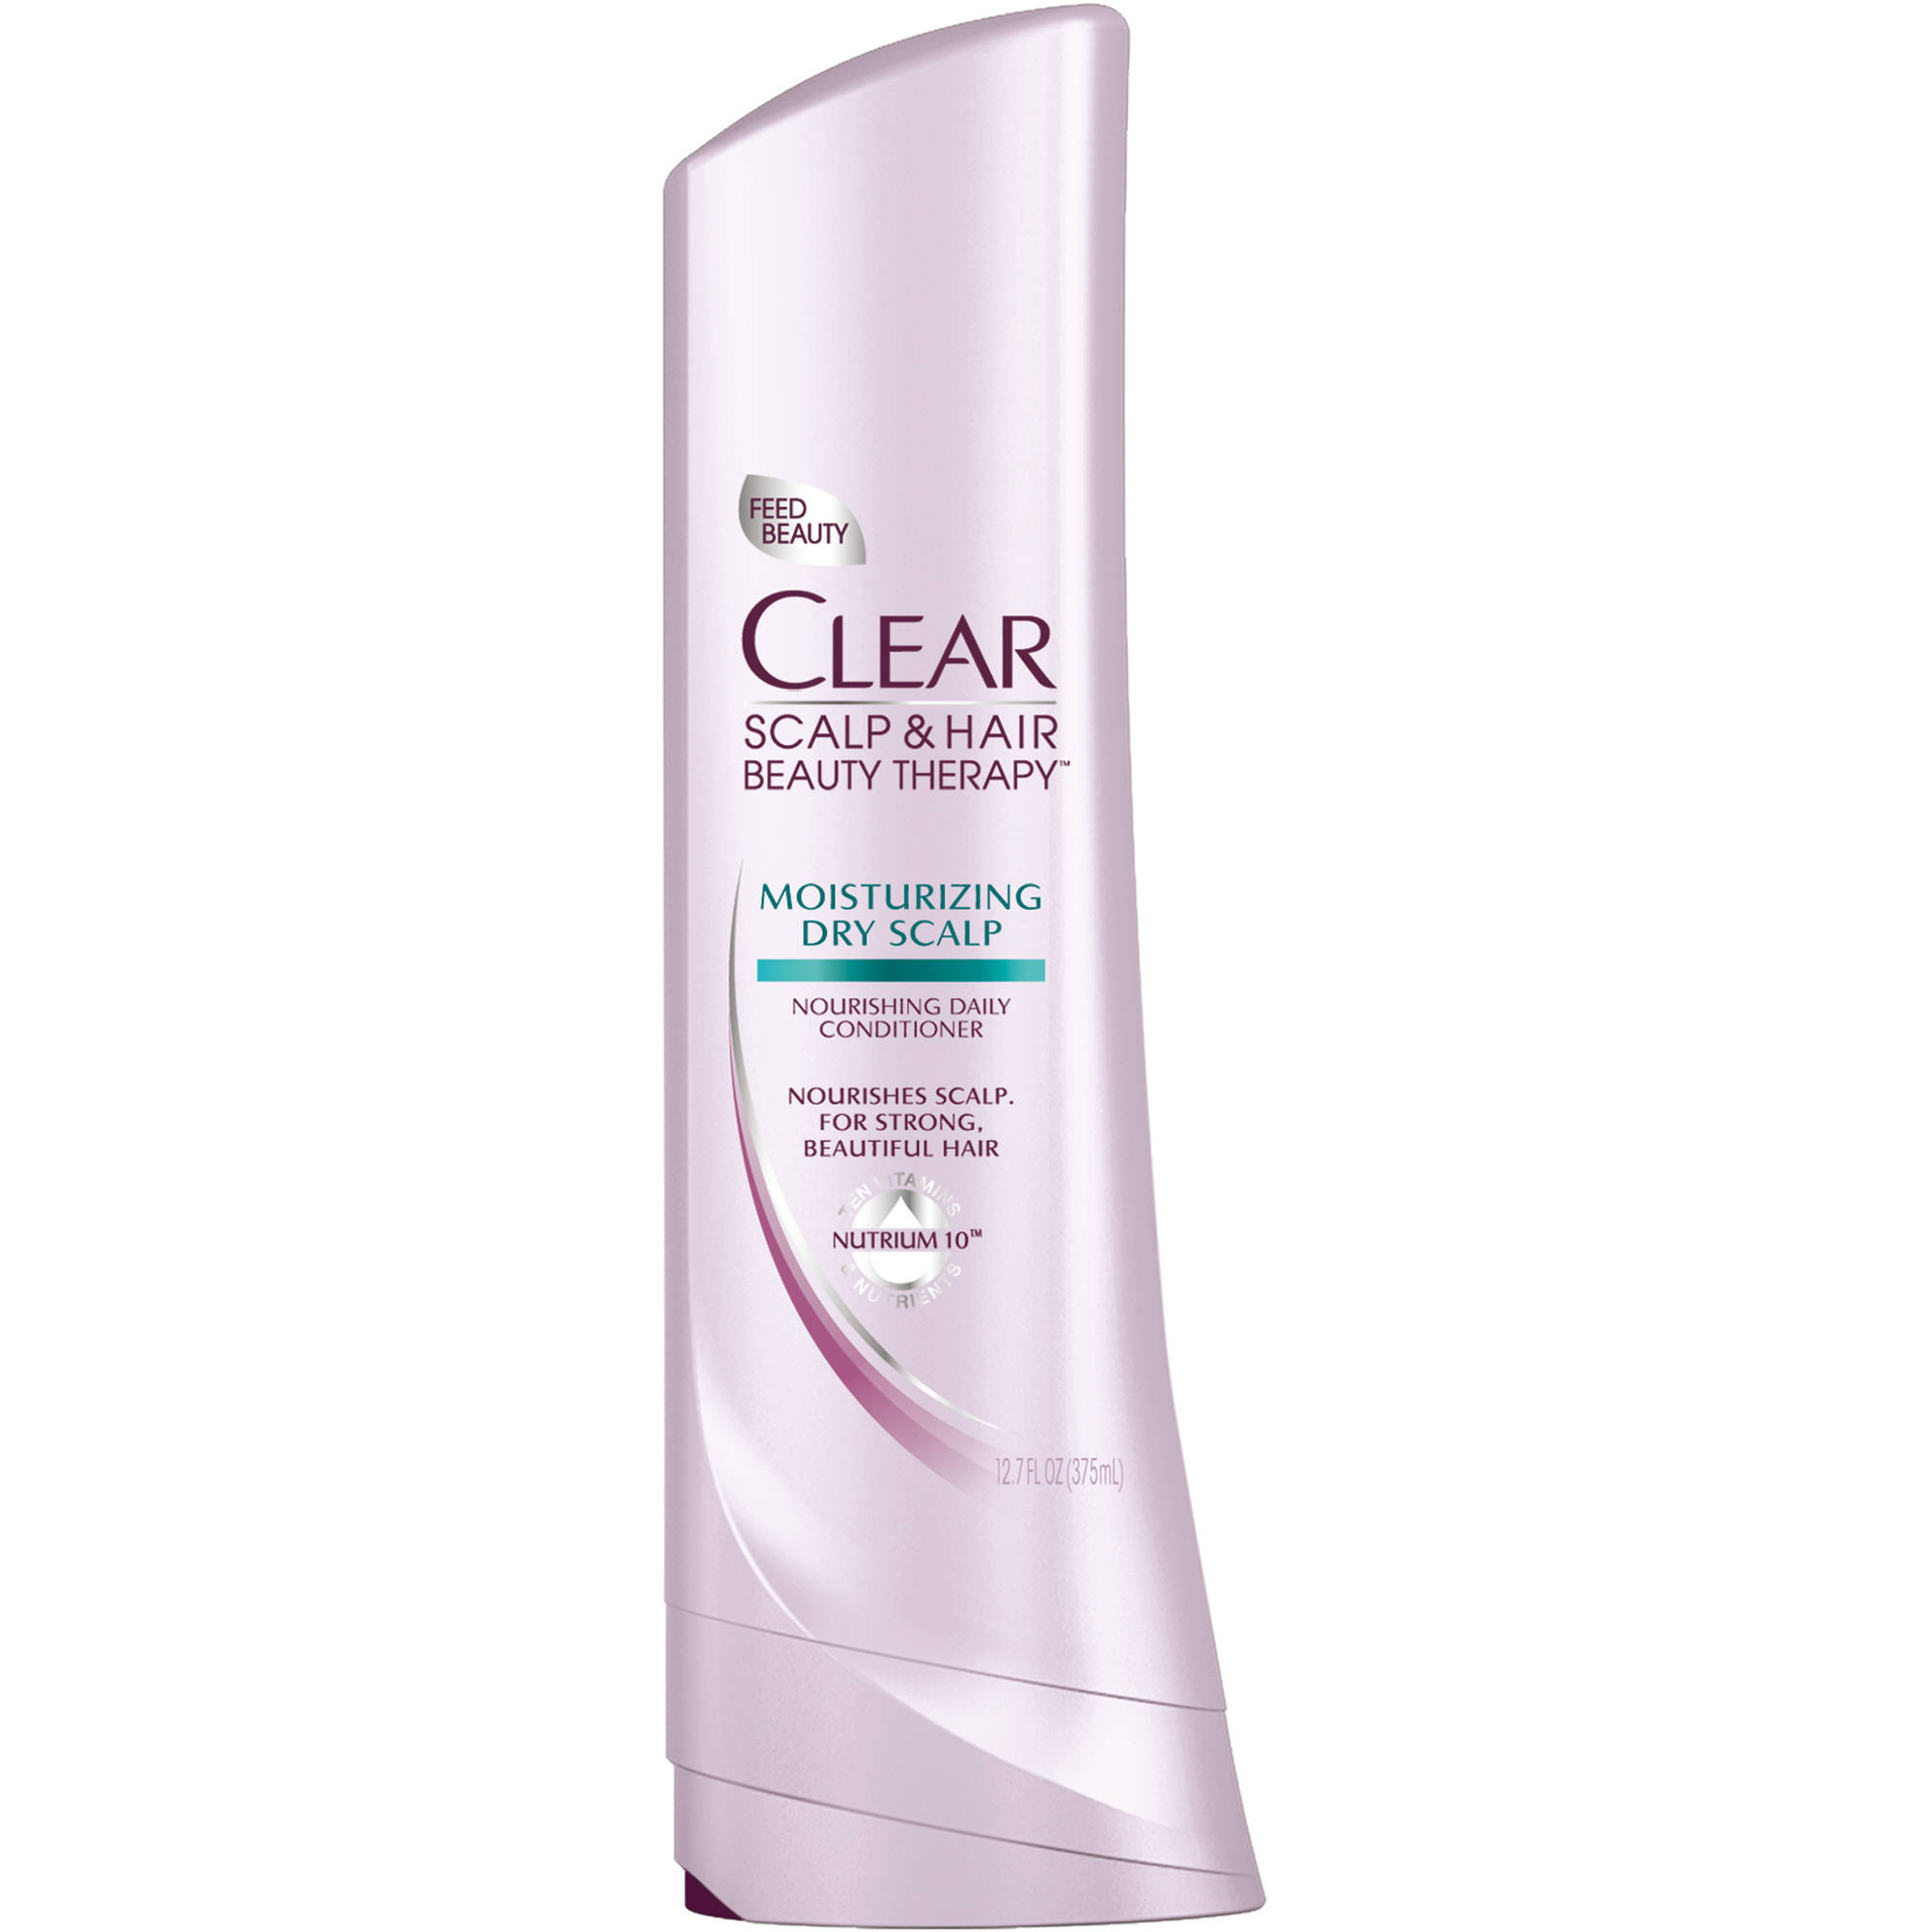 Clear Scalp & Hair Therapy Moisturizing Dry Scalp Nourishing Daily Conditioner, 12.7 oz